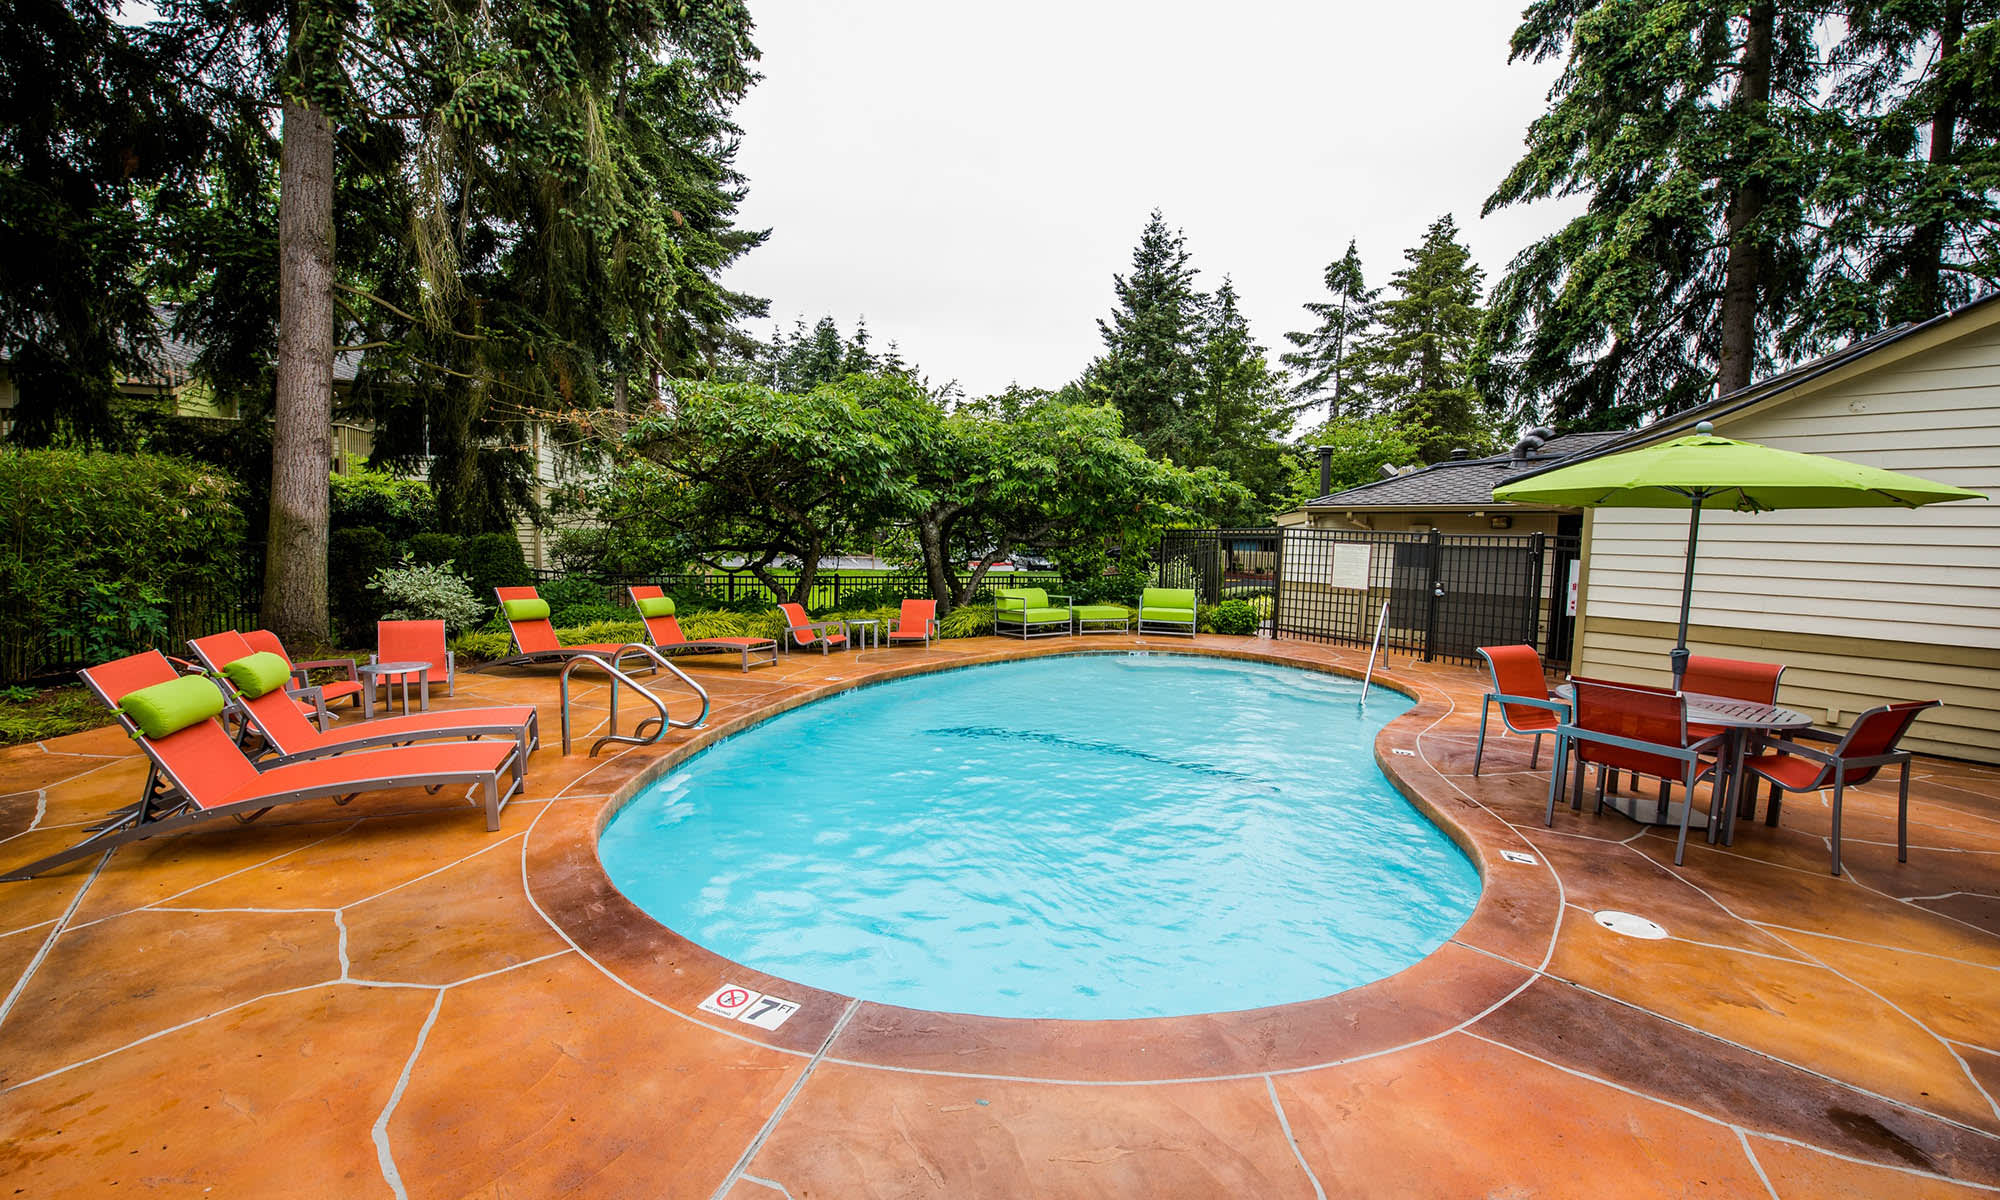 Apply at Edgewood Park Apartments in Bellevue, Washington